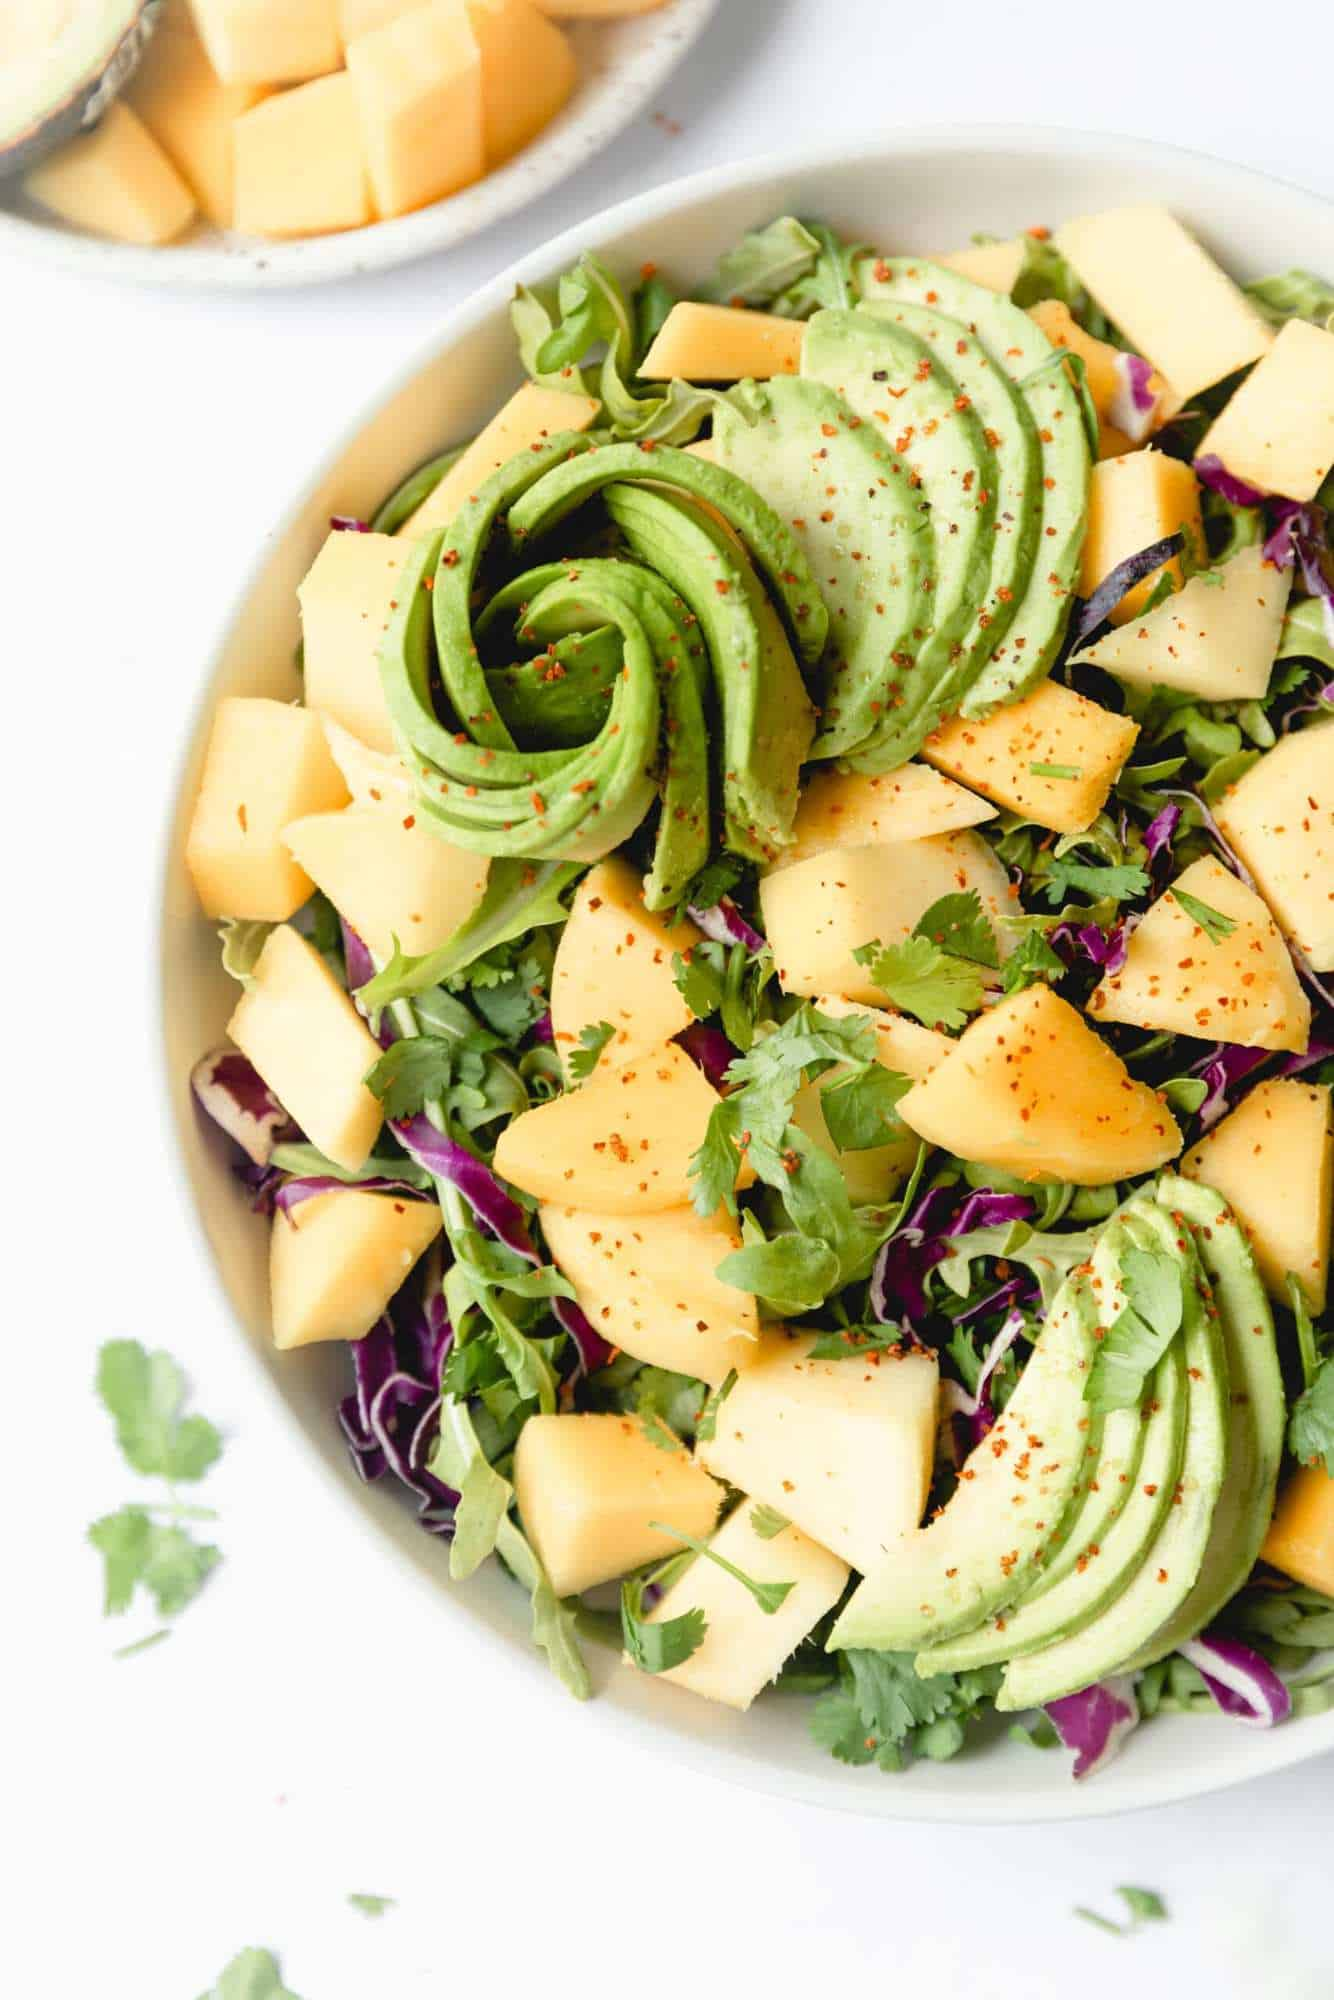 Overhead view of salad with mango chunks and avocado rose.